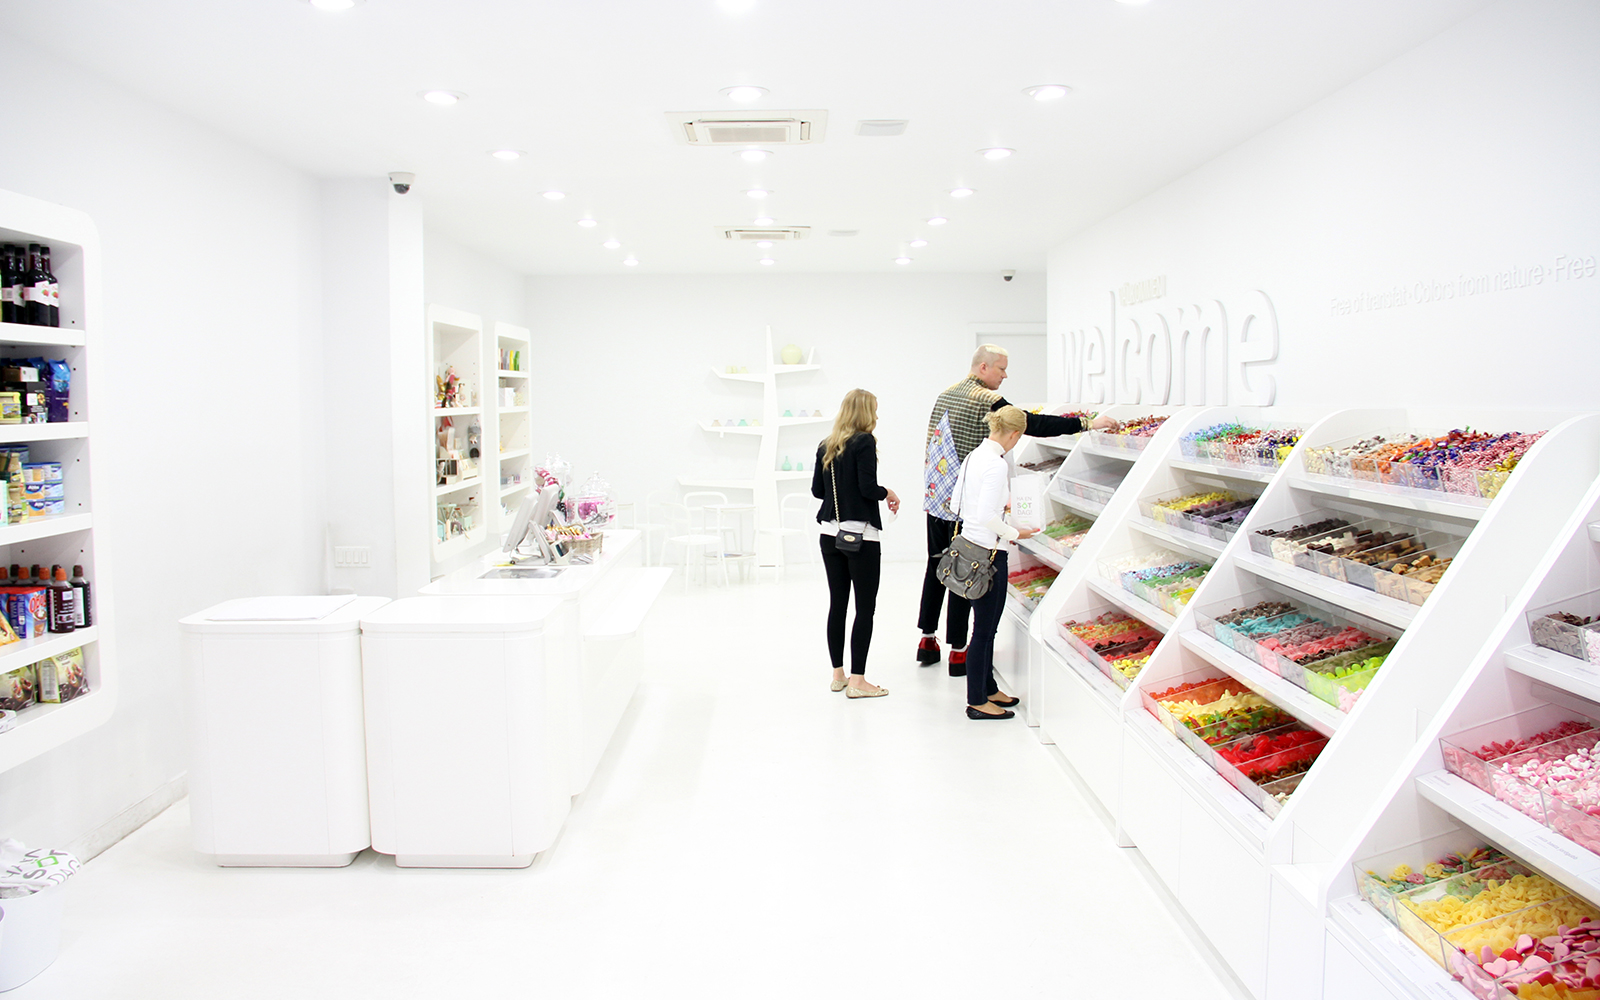 [node:title] - Local Candy Stores